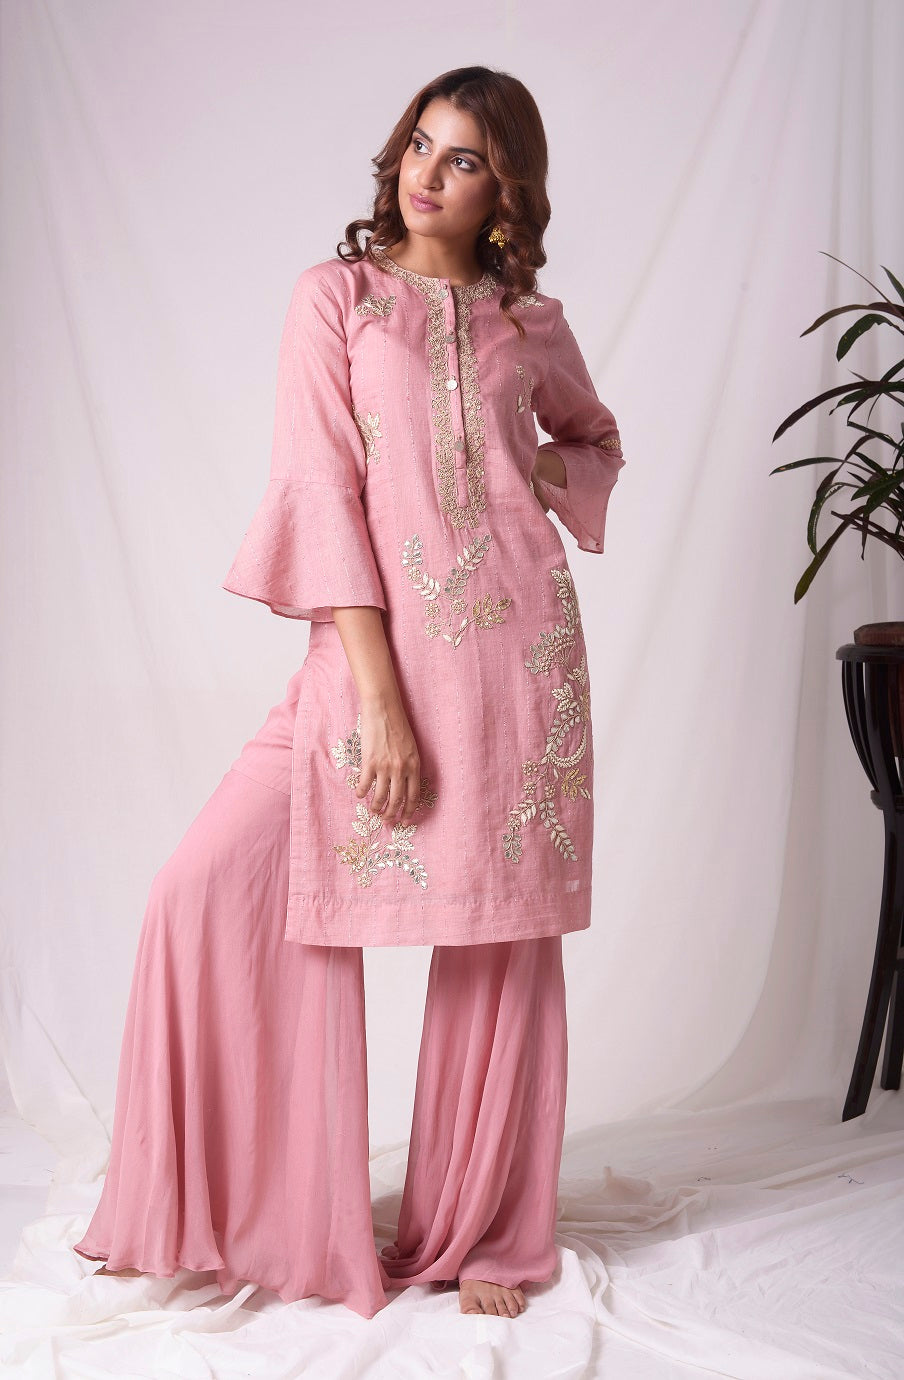 Buy dusty pink chanderi suit online in USA. Be the talk of parties and weddings with exquisite designer gowns, Indian suits, Anarkali dresses, Indo-western dresses from Pure Elegance Indian clothing store in USA .Shop online now.-full view